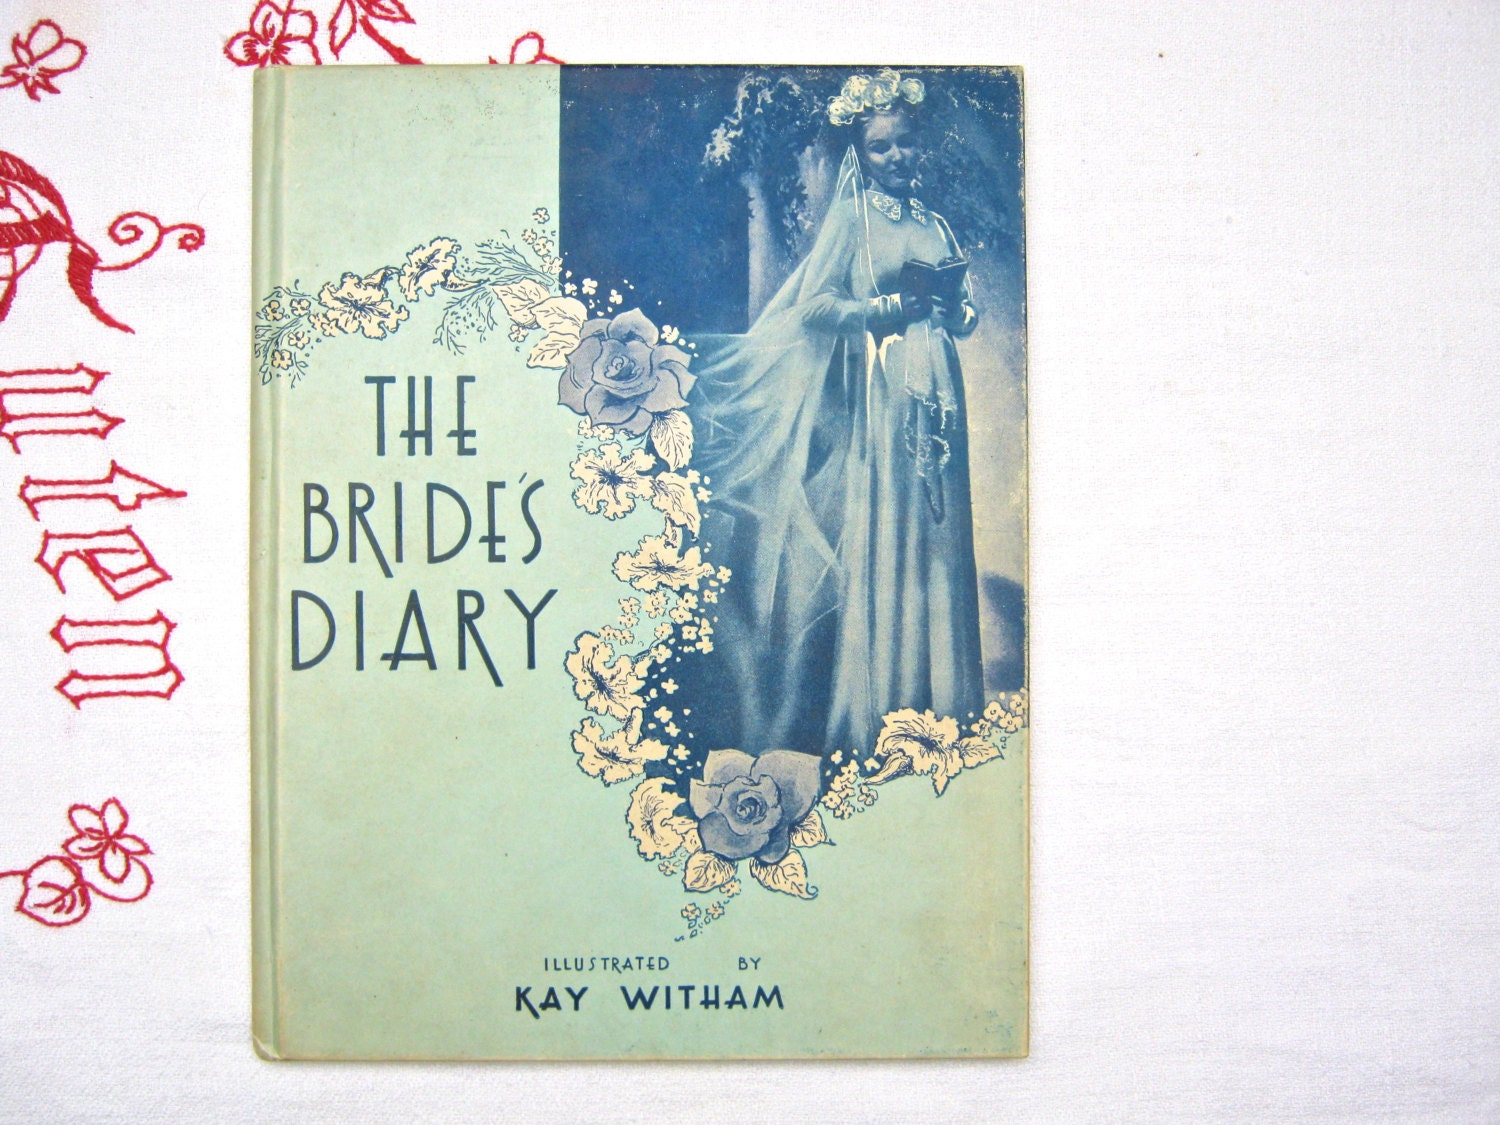 Emily Post Wedding Gift Etiquette: Bride's Diary Vintage Book 1950s Wedding Etiquette